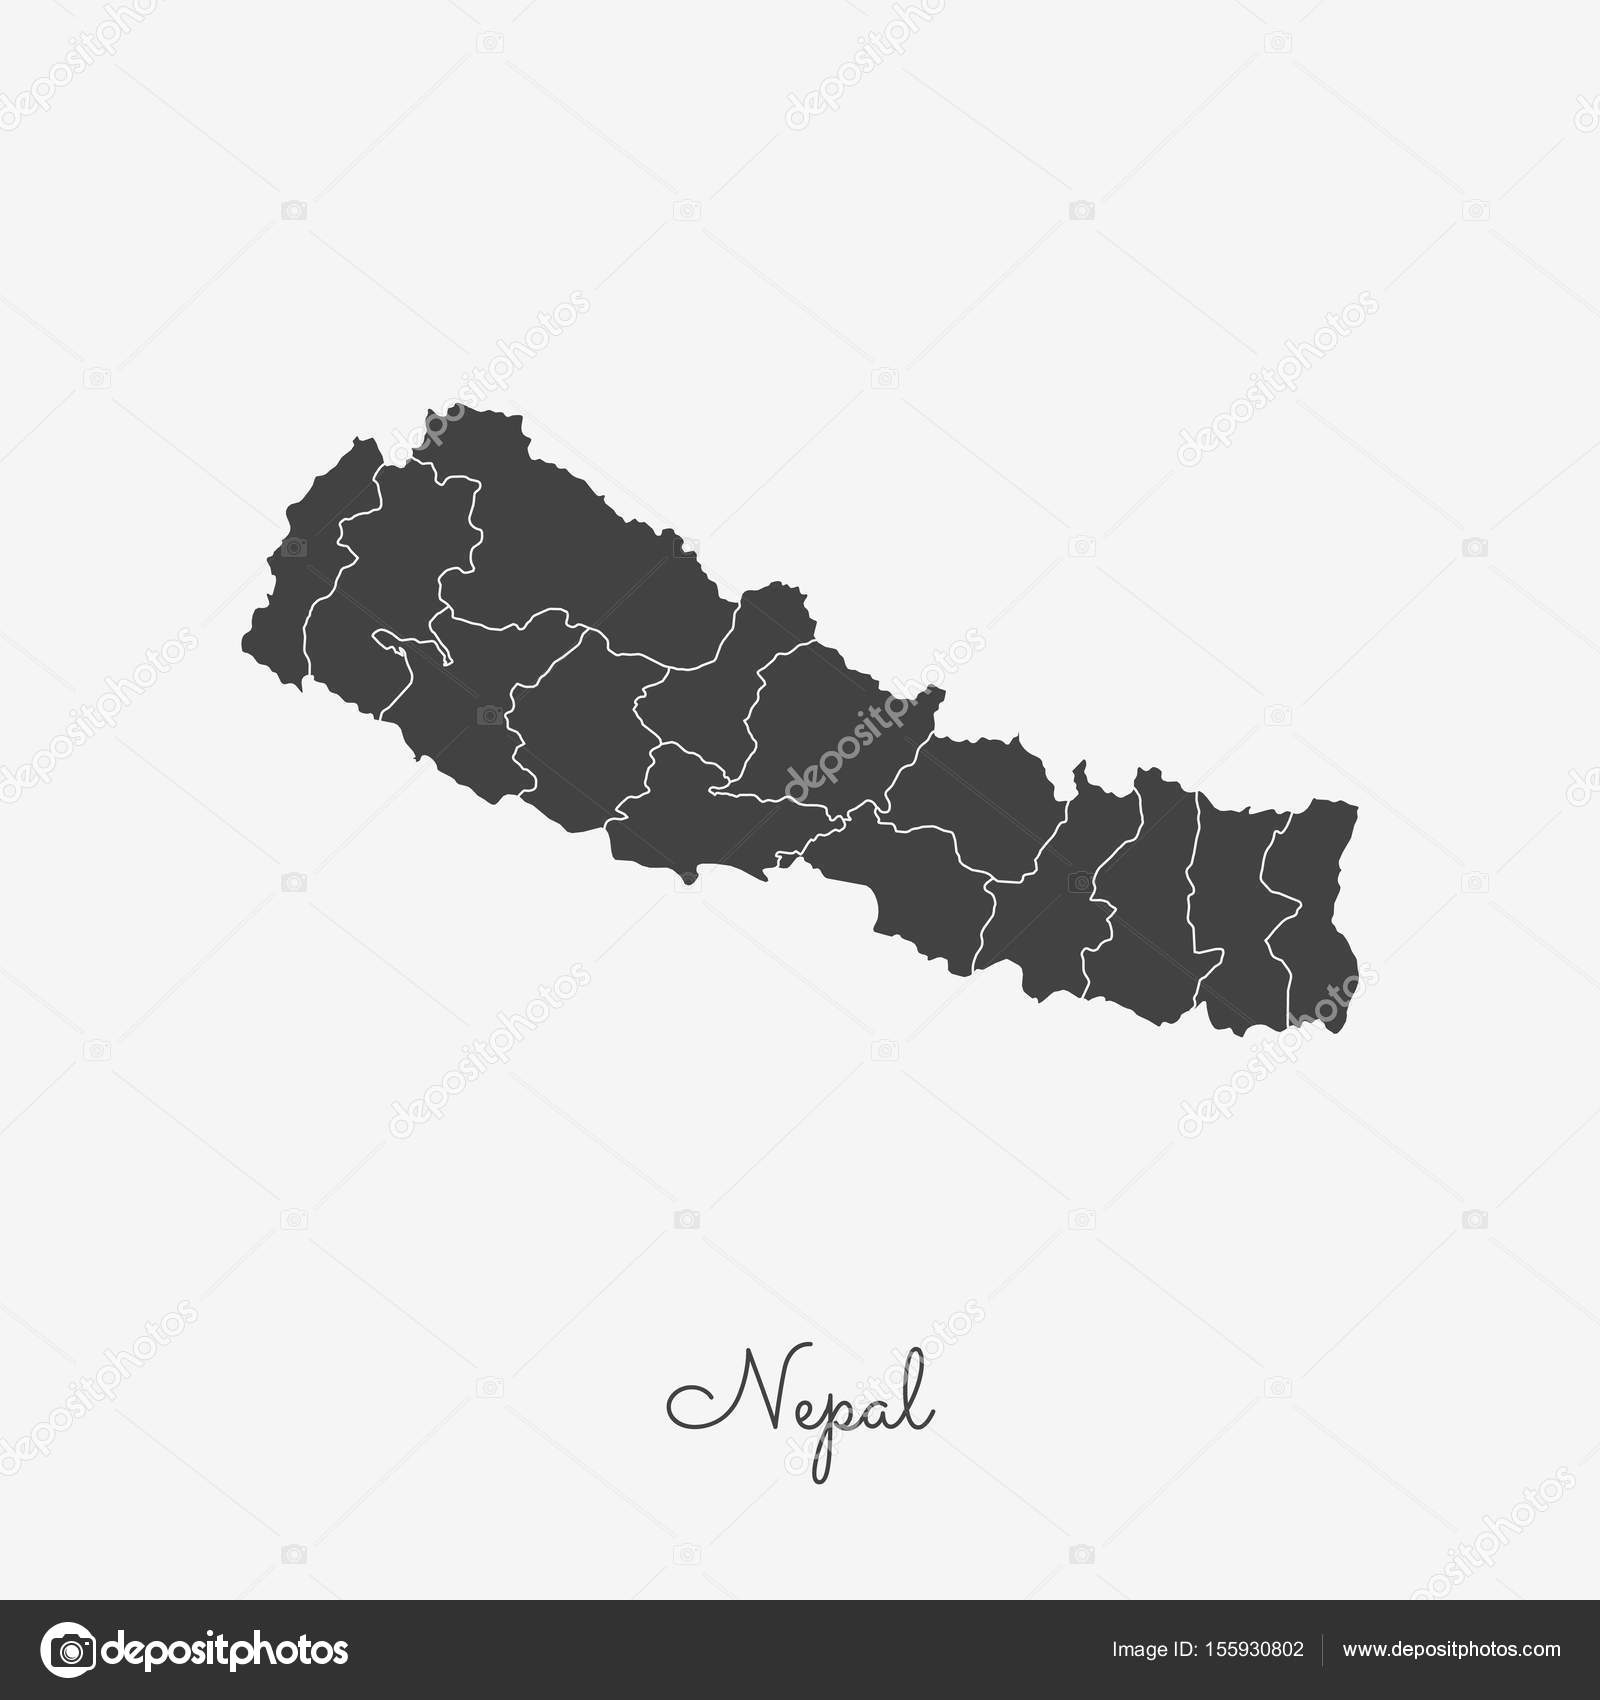 Nepal Karte Download.Nepal Region Map Grey Outline On White Background Detailed